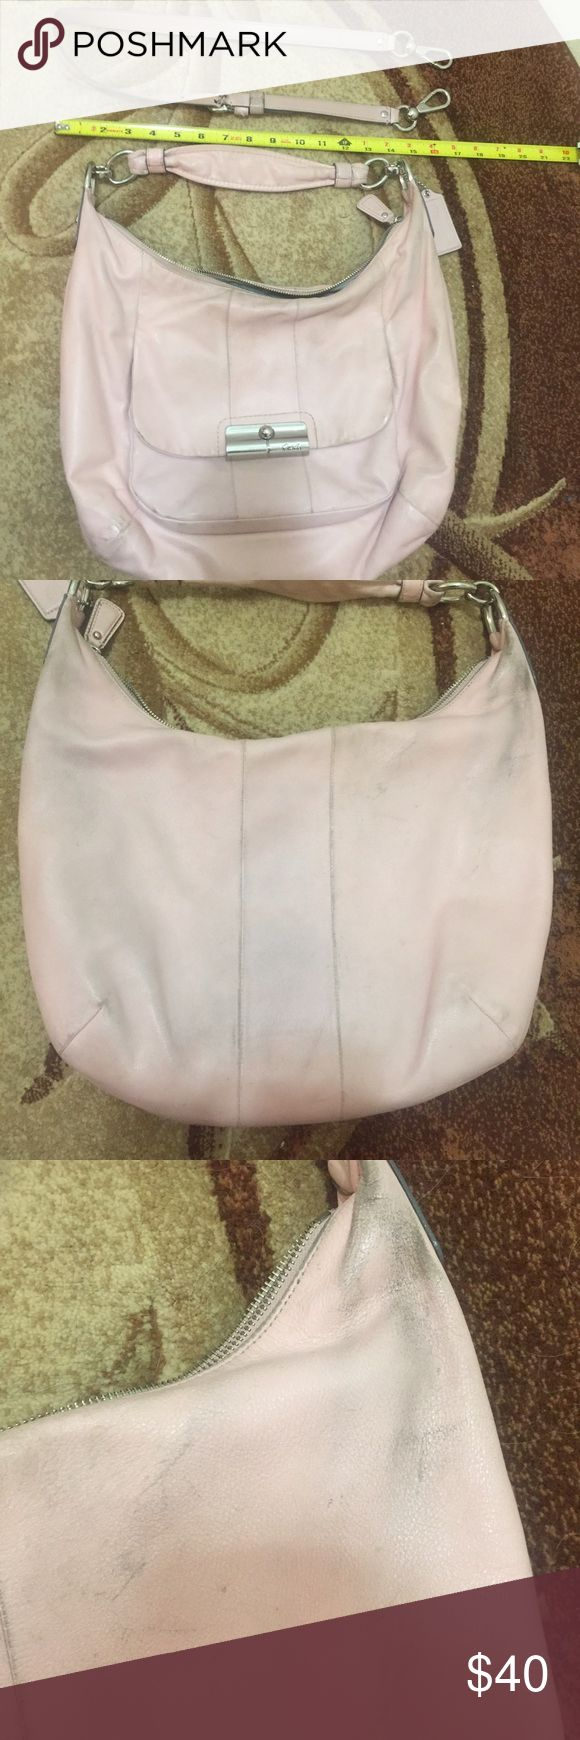 """Blush pink Coach hobo crossbody Used Coach hobo, has short shoulder strap with detachable crossbody strap. Crossbody strap measures approx 32"""". This bag HAS WEAR. I tried to show in the photos. Bottom """"corners"""" of bag have wear/slight color transfer. Back of bag has wear and color transfer. Third photo shows back of bag at top right (I wear it on my right side so this is the part that rubs on back of jeans, etc. I have wiped it down but not tried cleaning it as I don't  want to ruin the…"""